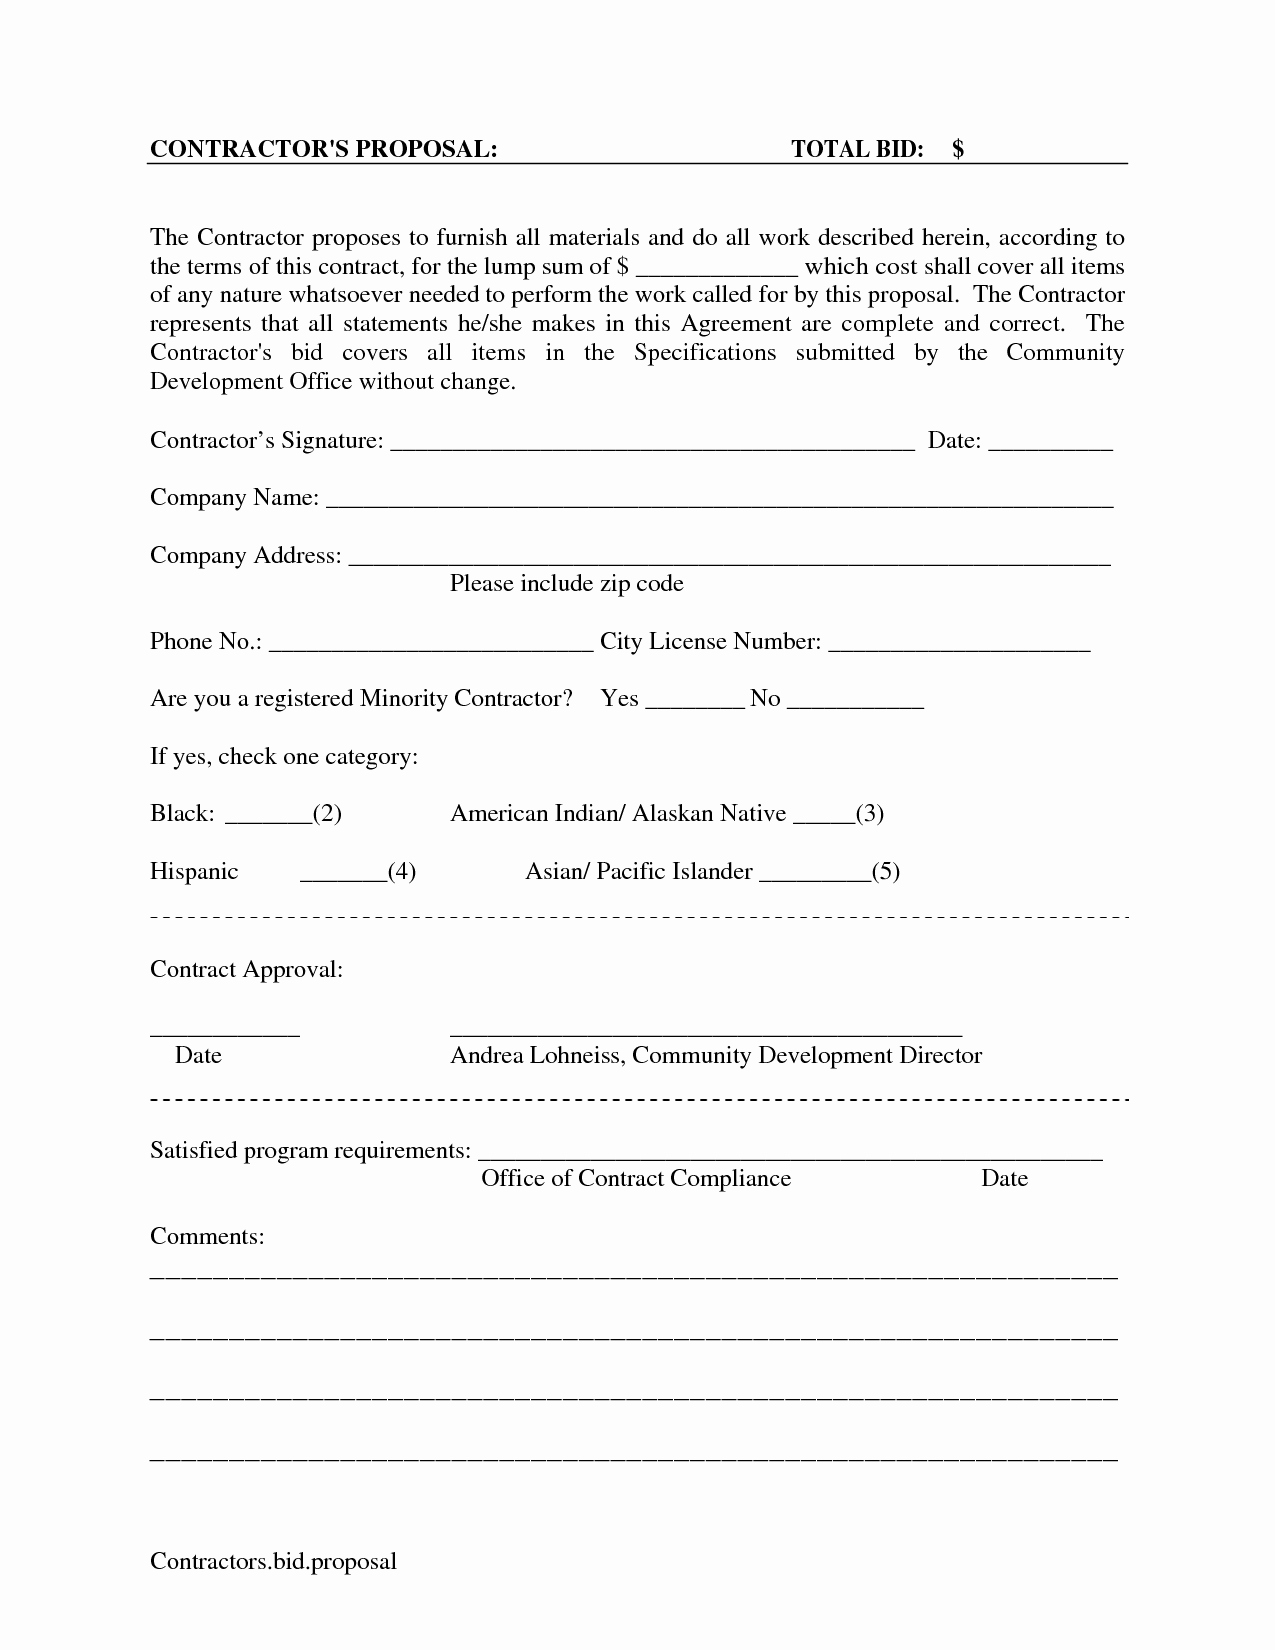 House Cleaning Contract Template Awesome Printable Blank Bid Proposal forms